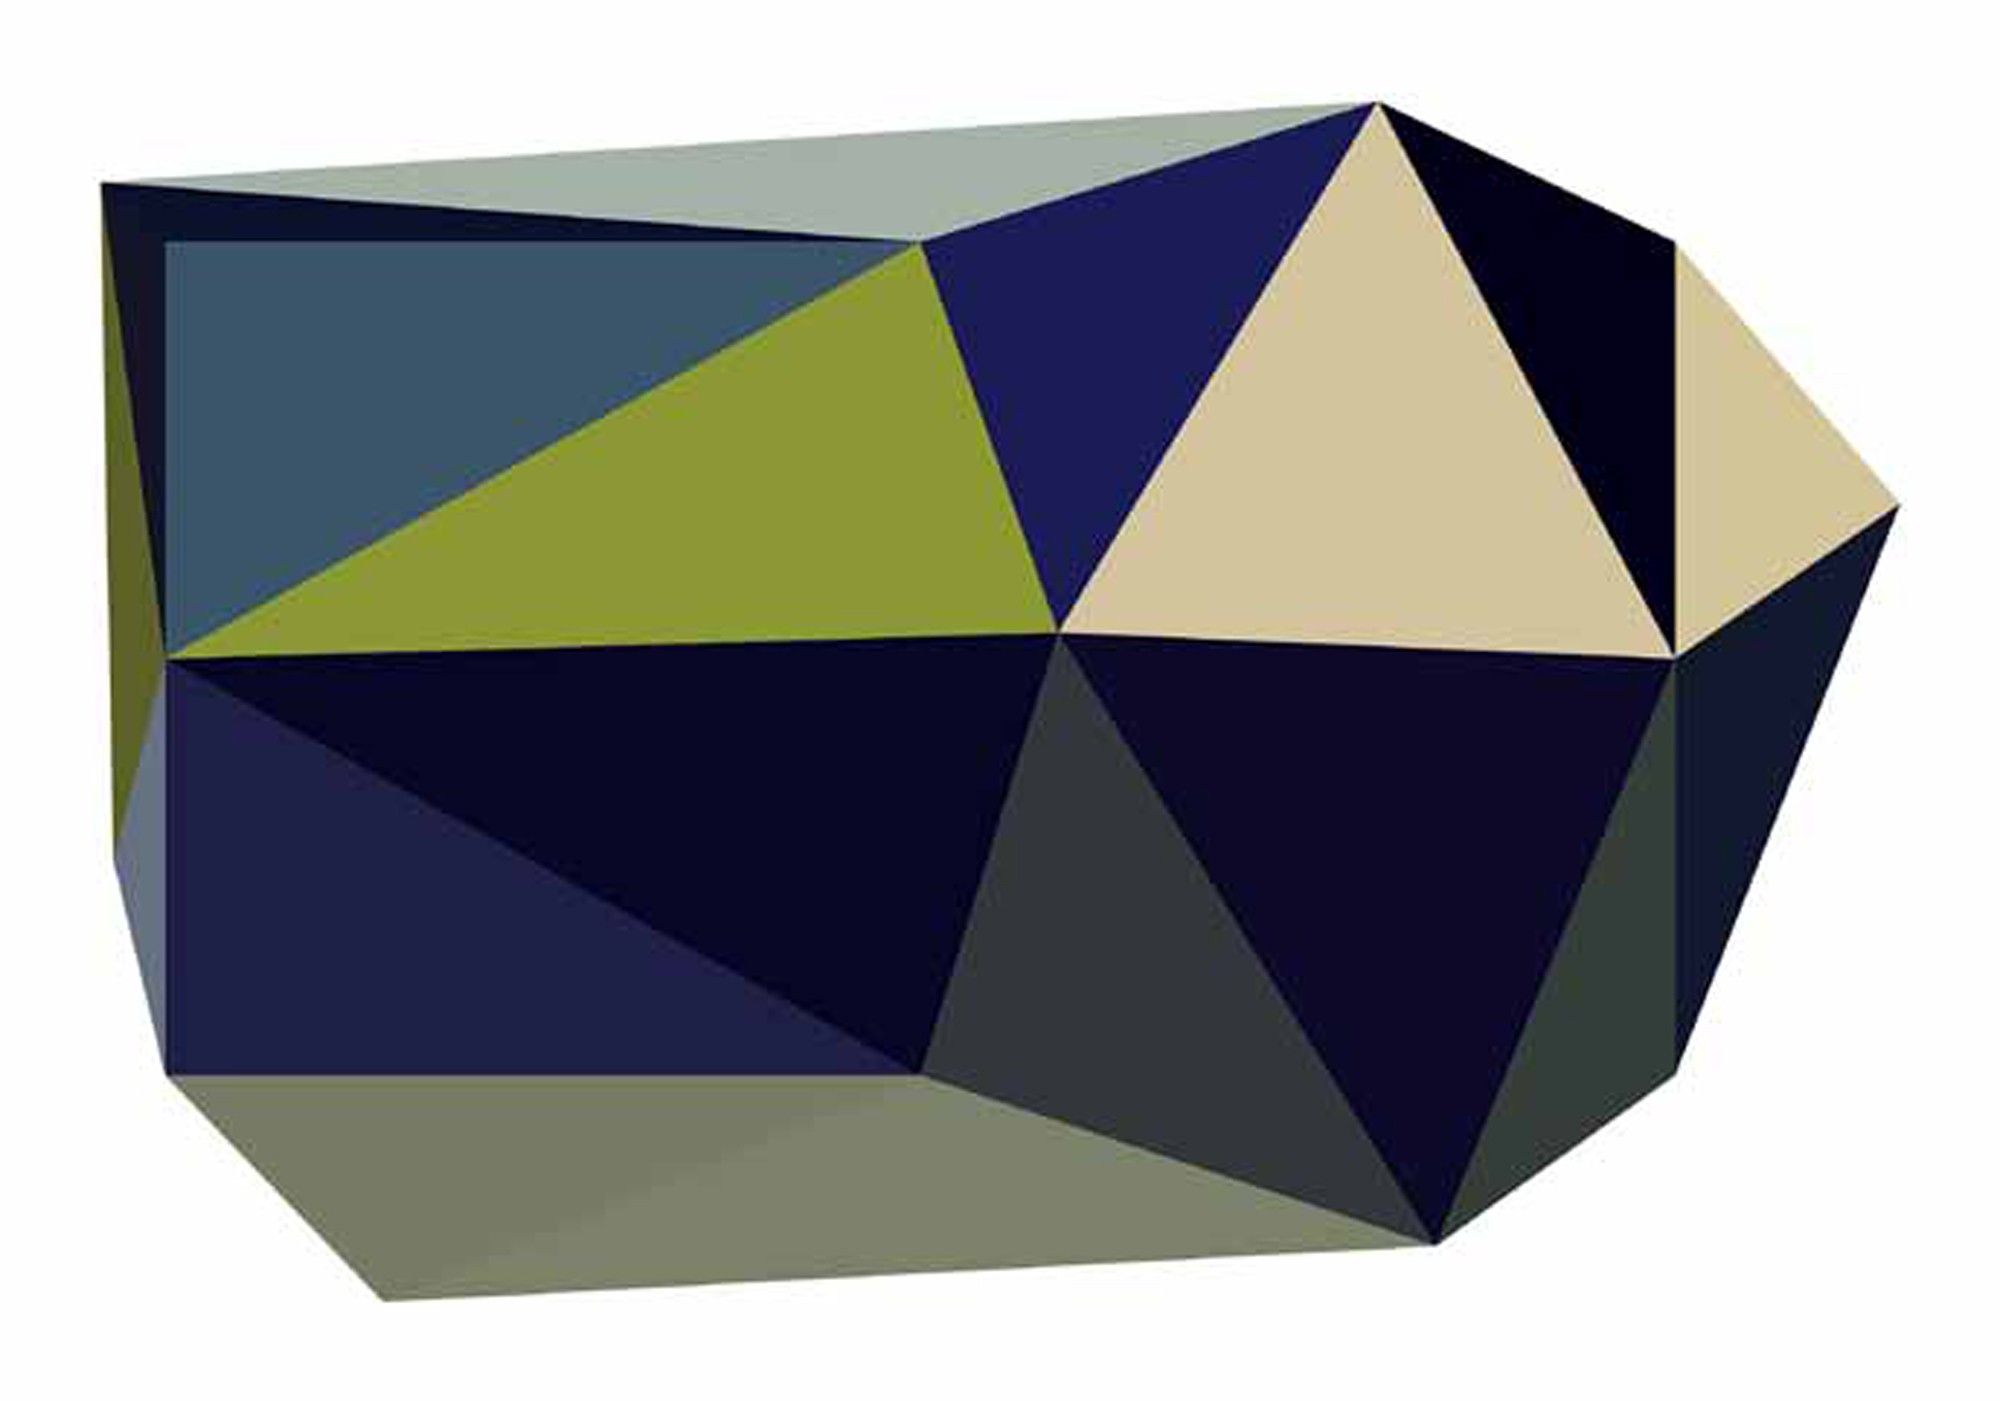 Triangulations n°2, 2013